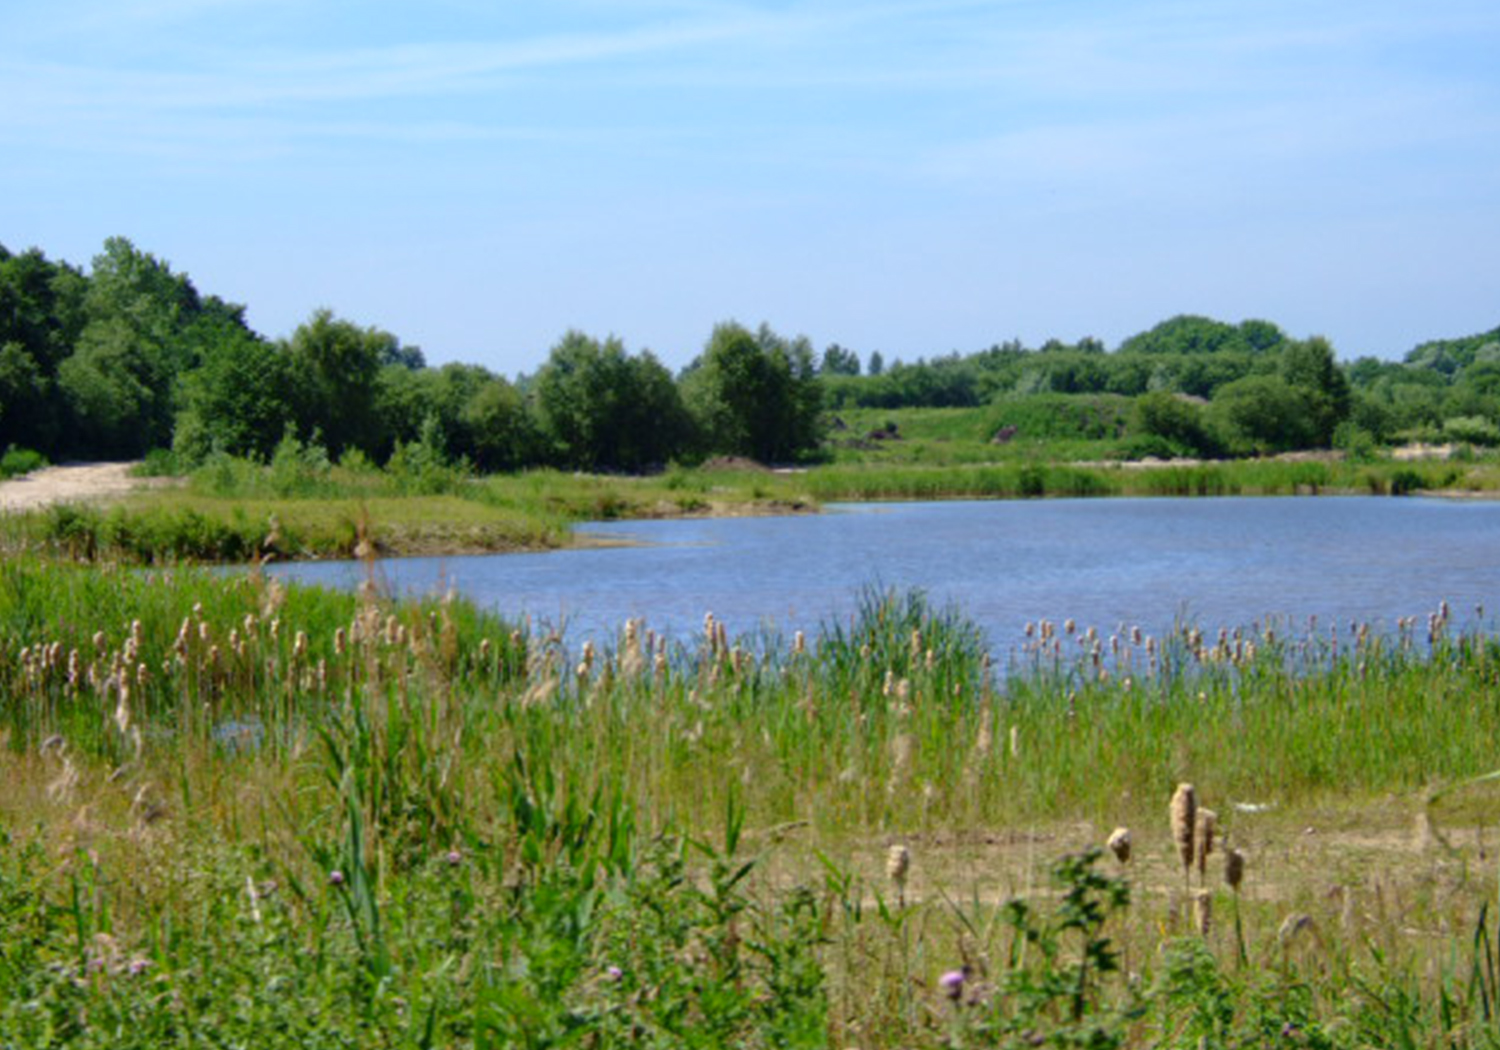 Projects-MineralsWaste-Oxborough-Waterbody-1500x1050